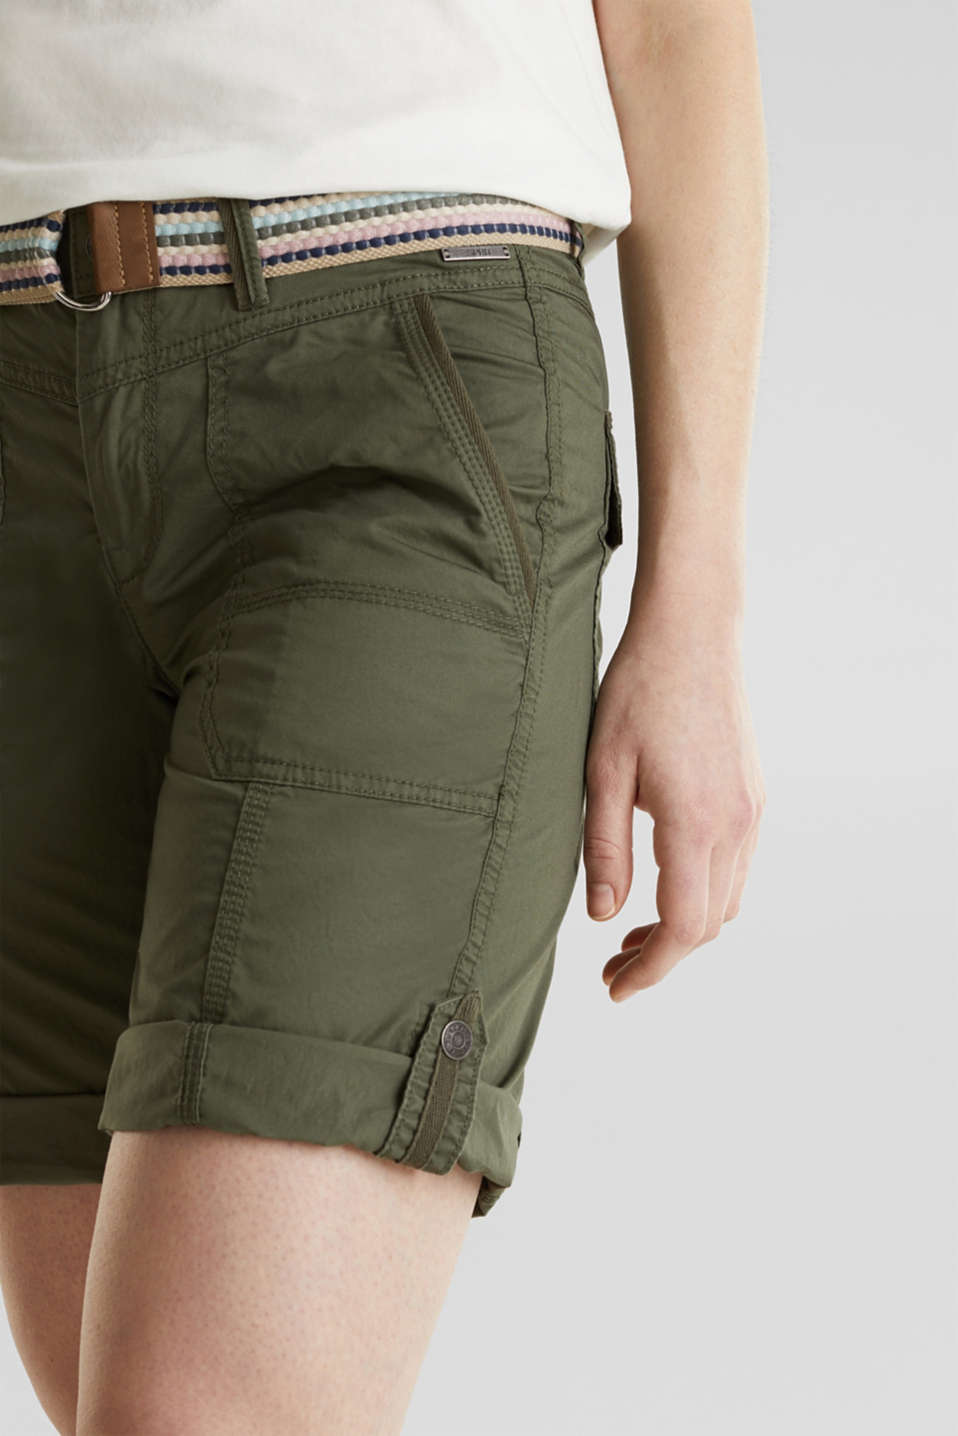 PLAY cotton shorts, KHAKI GREEN, detail image number 2